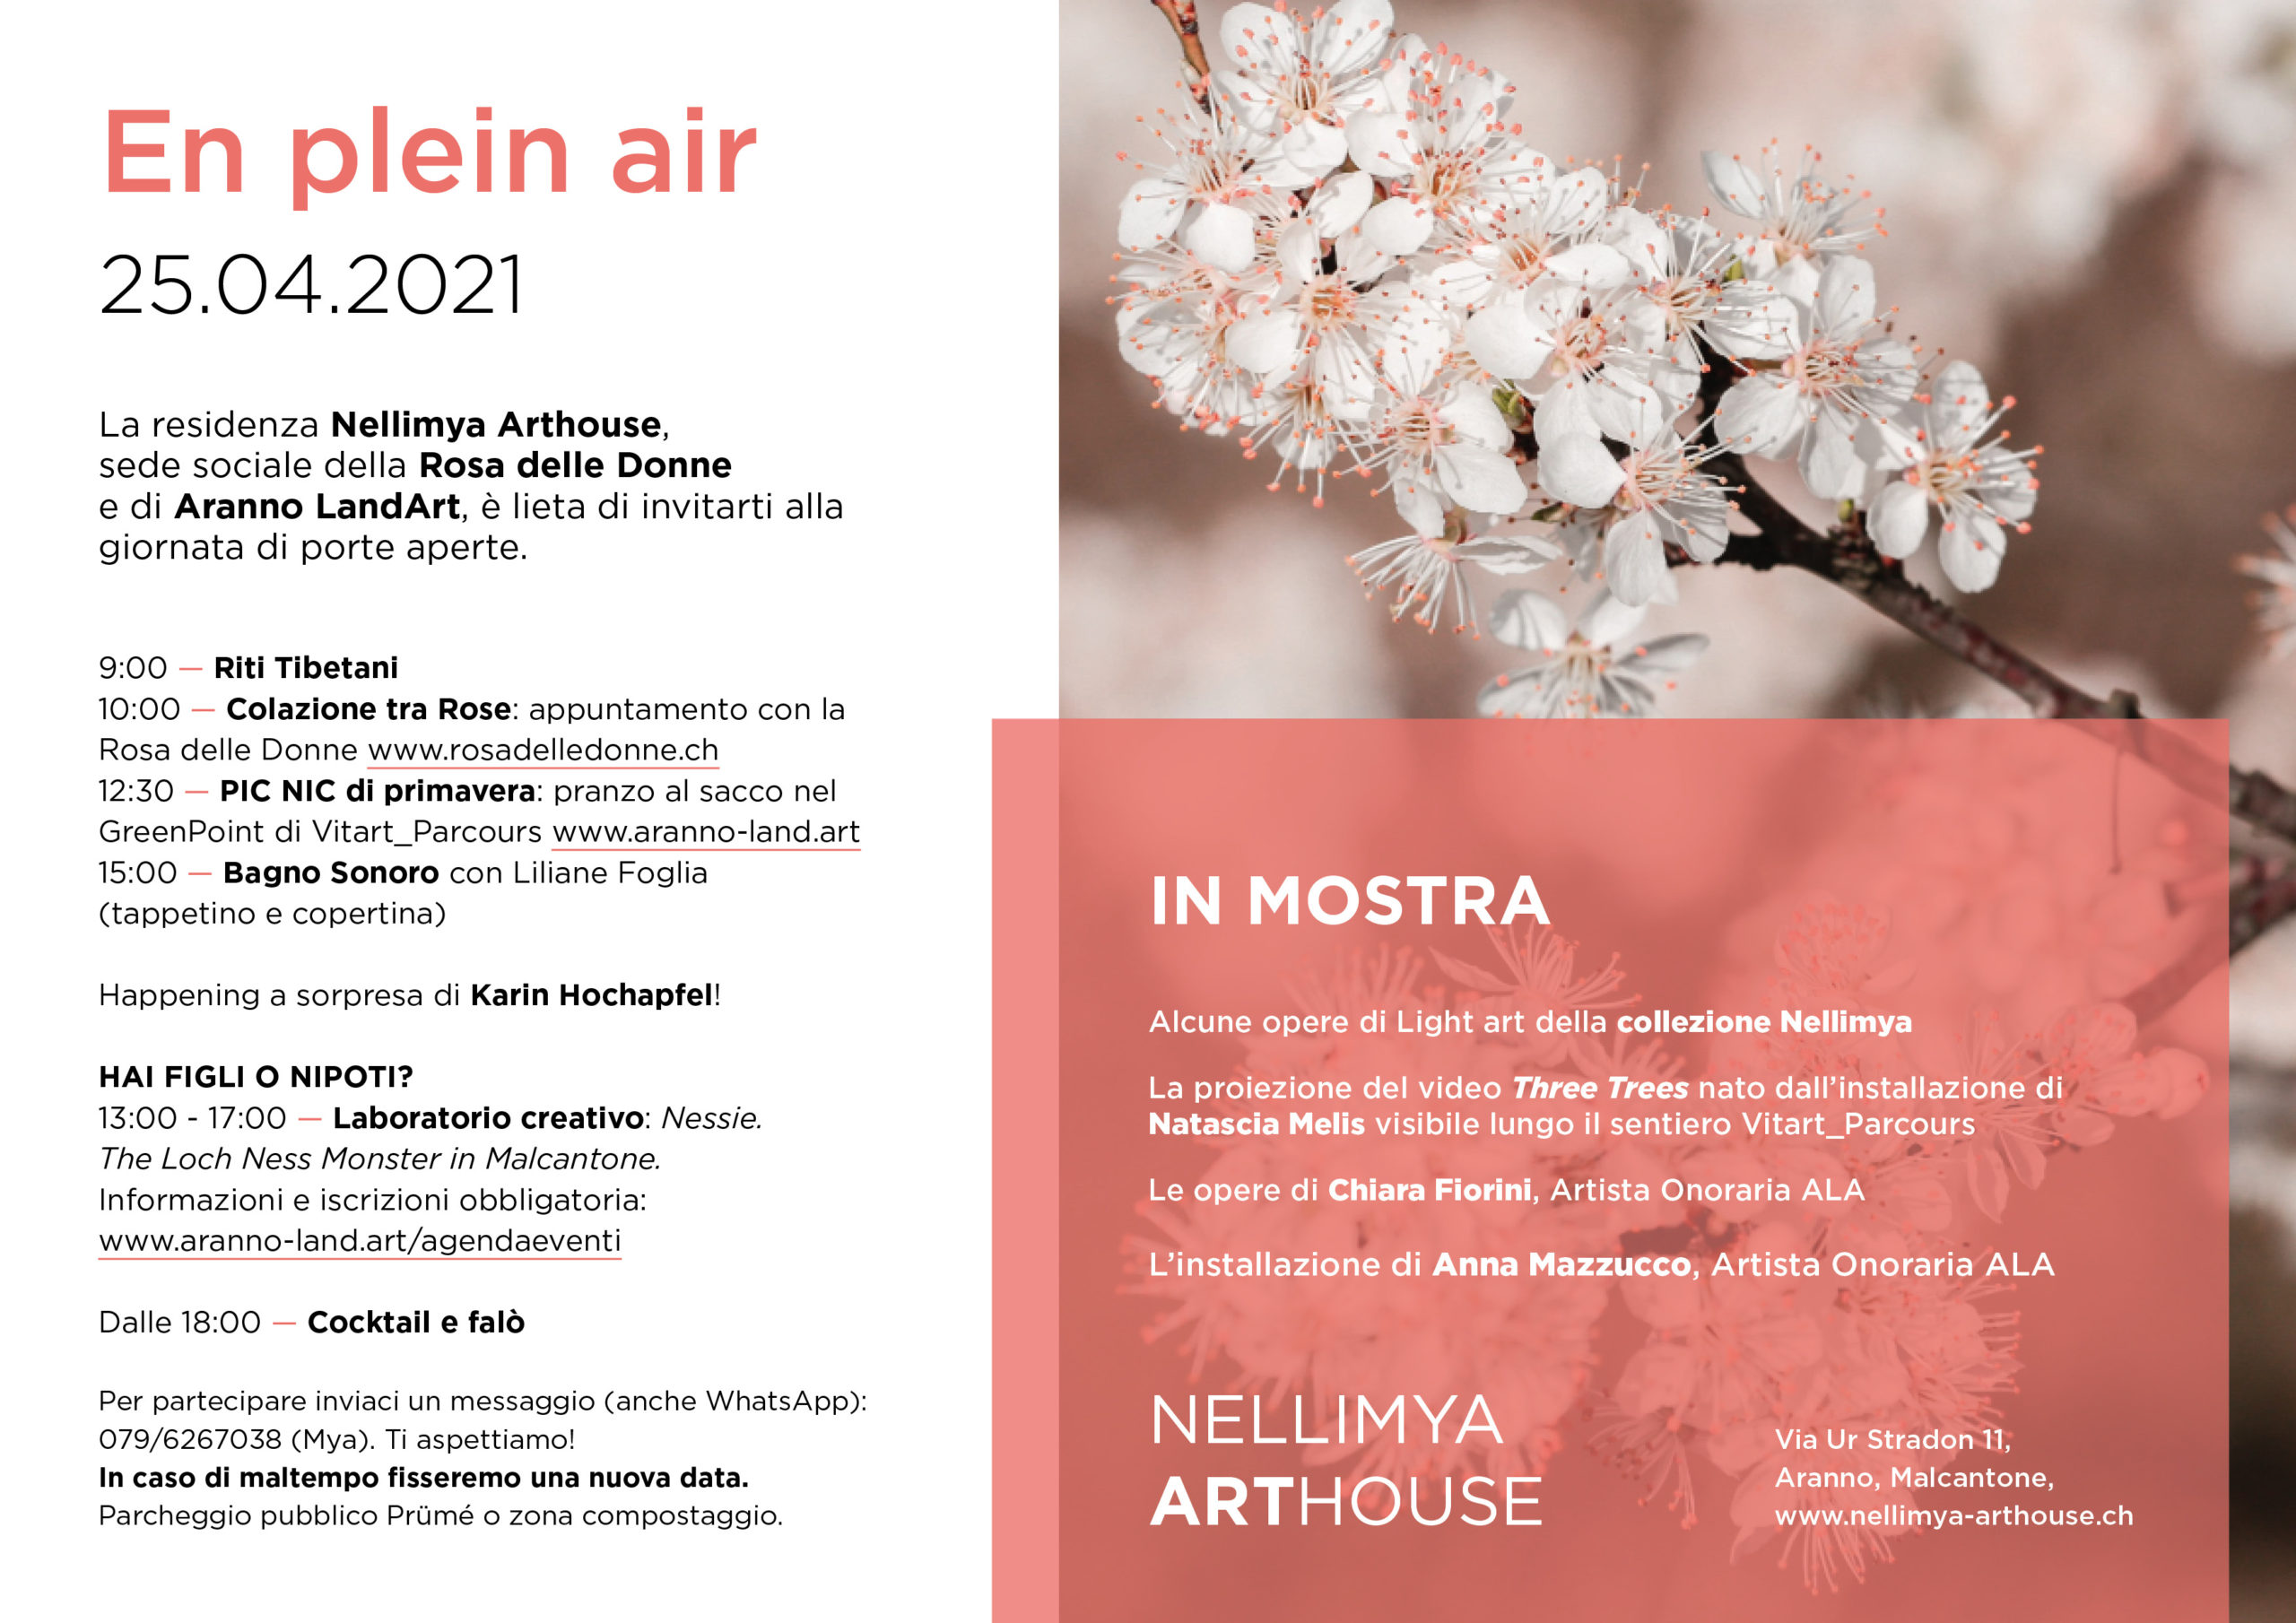 Nellimya Arthouse - 25.04.2021 - En plein air